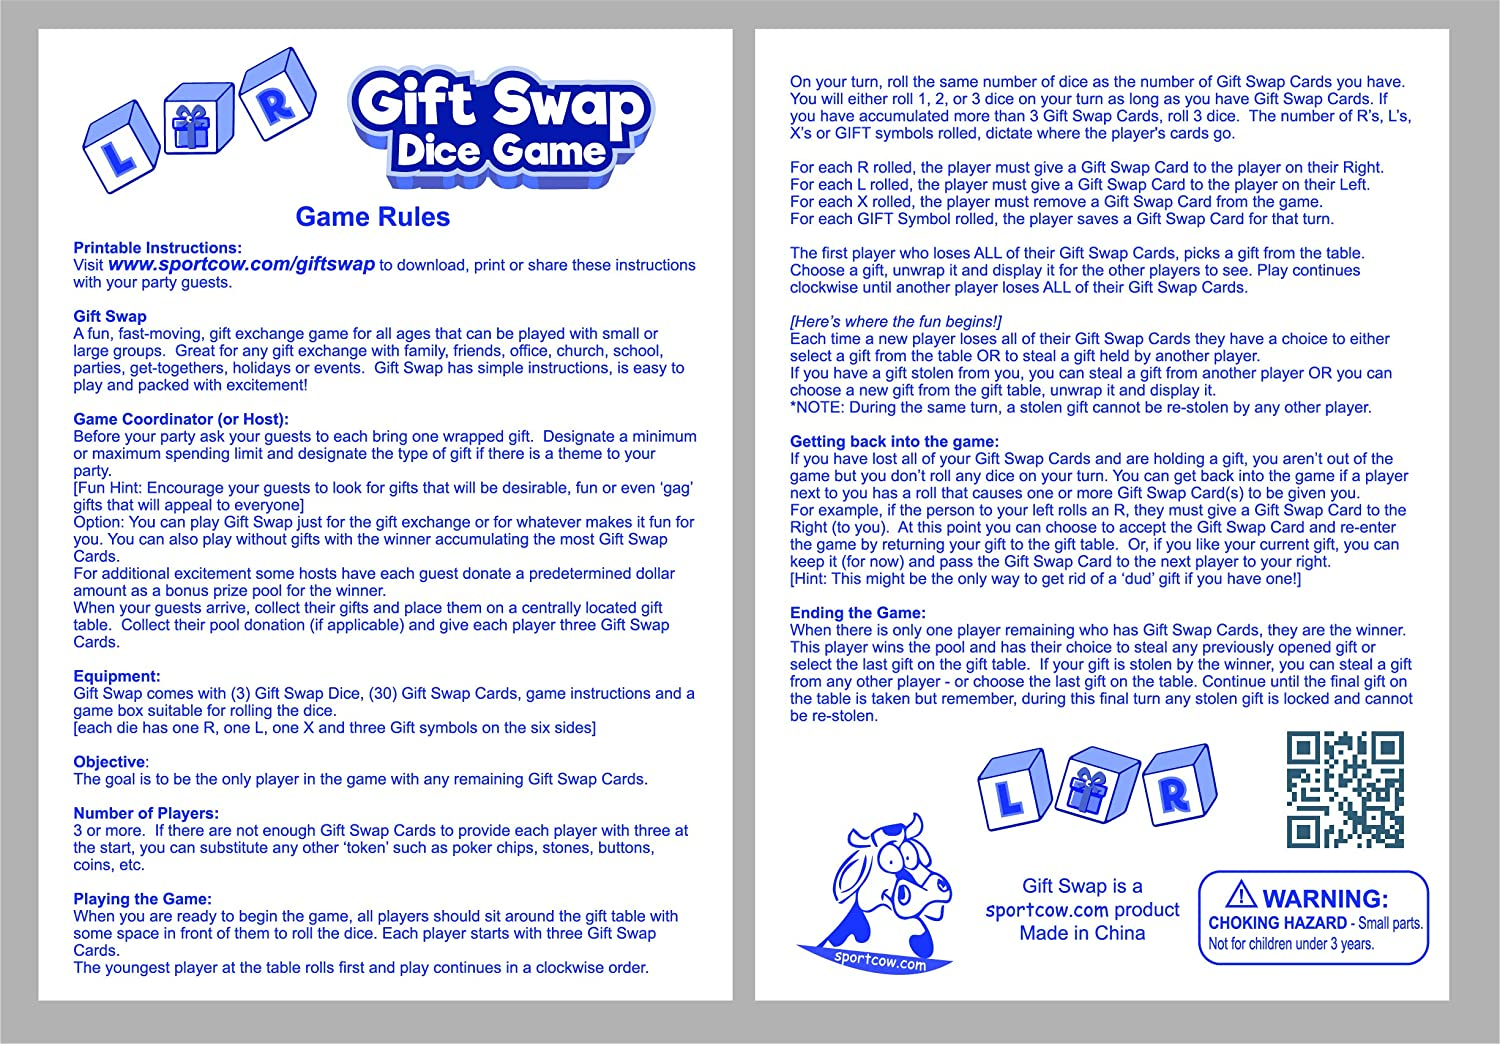 Christmas Gift Exchange Dice Game Printable.Gift Swap Dice Game By Sportcow Exchange Gifts With Family And Friends At Parties Home Office Church School Holidays Events Easy To Learn